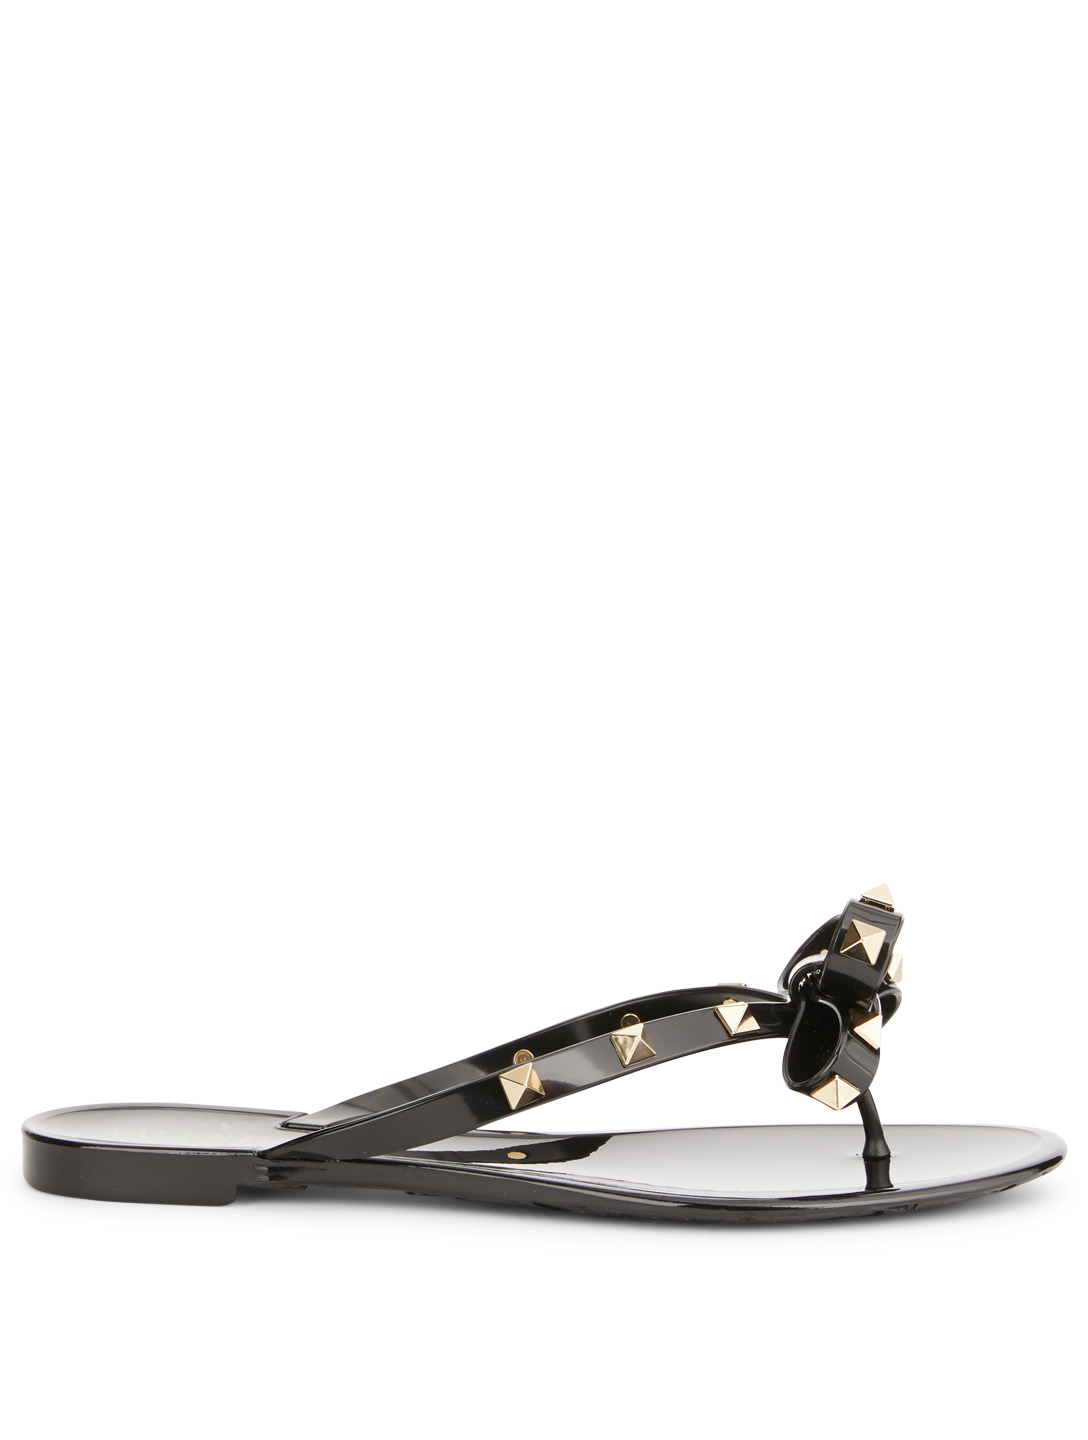 5ab4dea5159 VALENTINO Rockstud Jelly Thong Sandals Womens Black ...